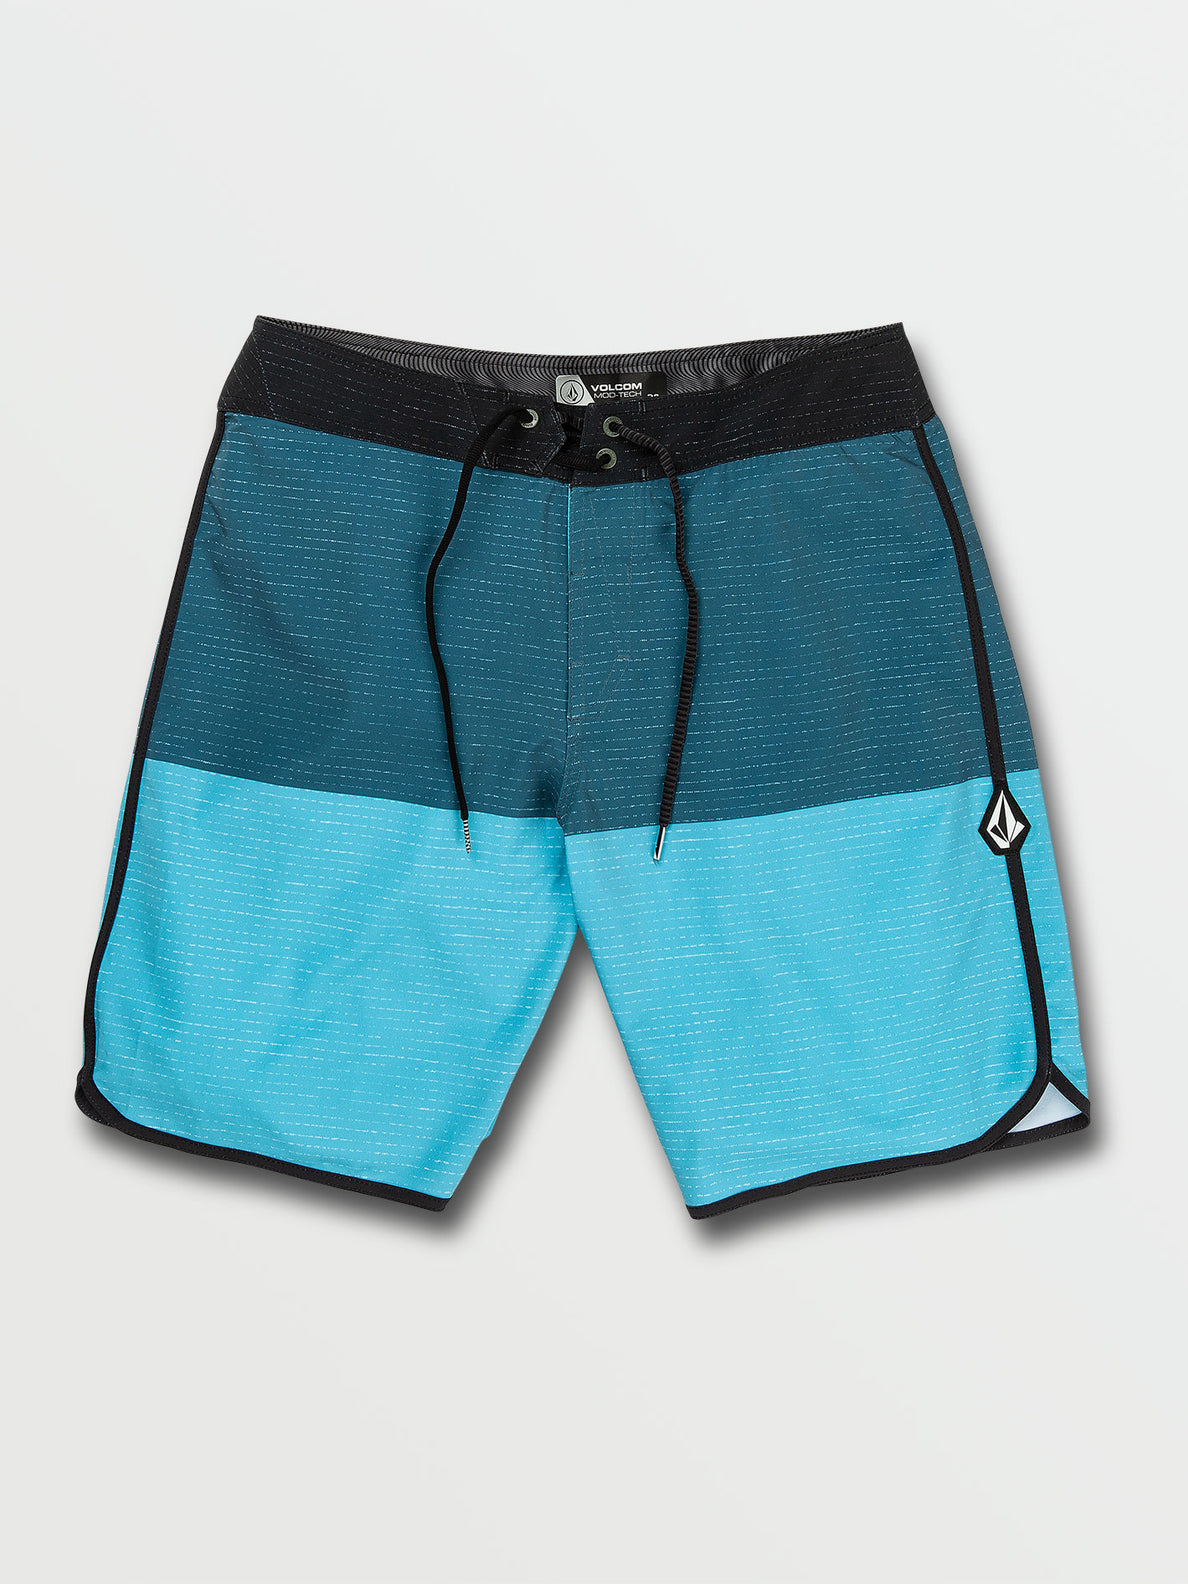 Lido Heather Scallop Mod-Tech Trunks - Rincon Blue (A0822015_RNC) [F]